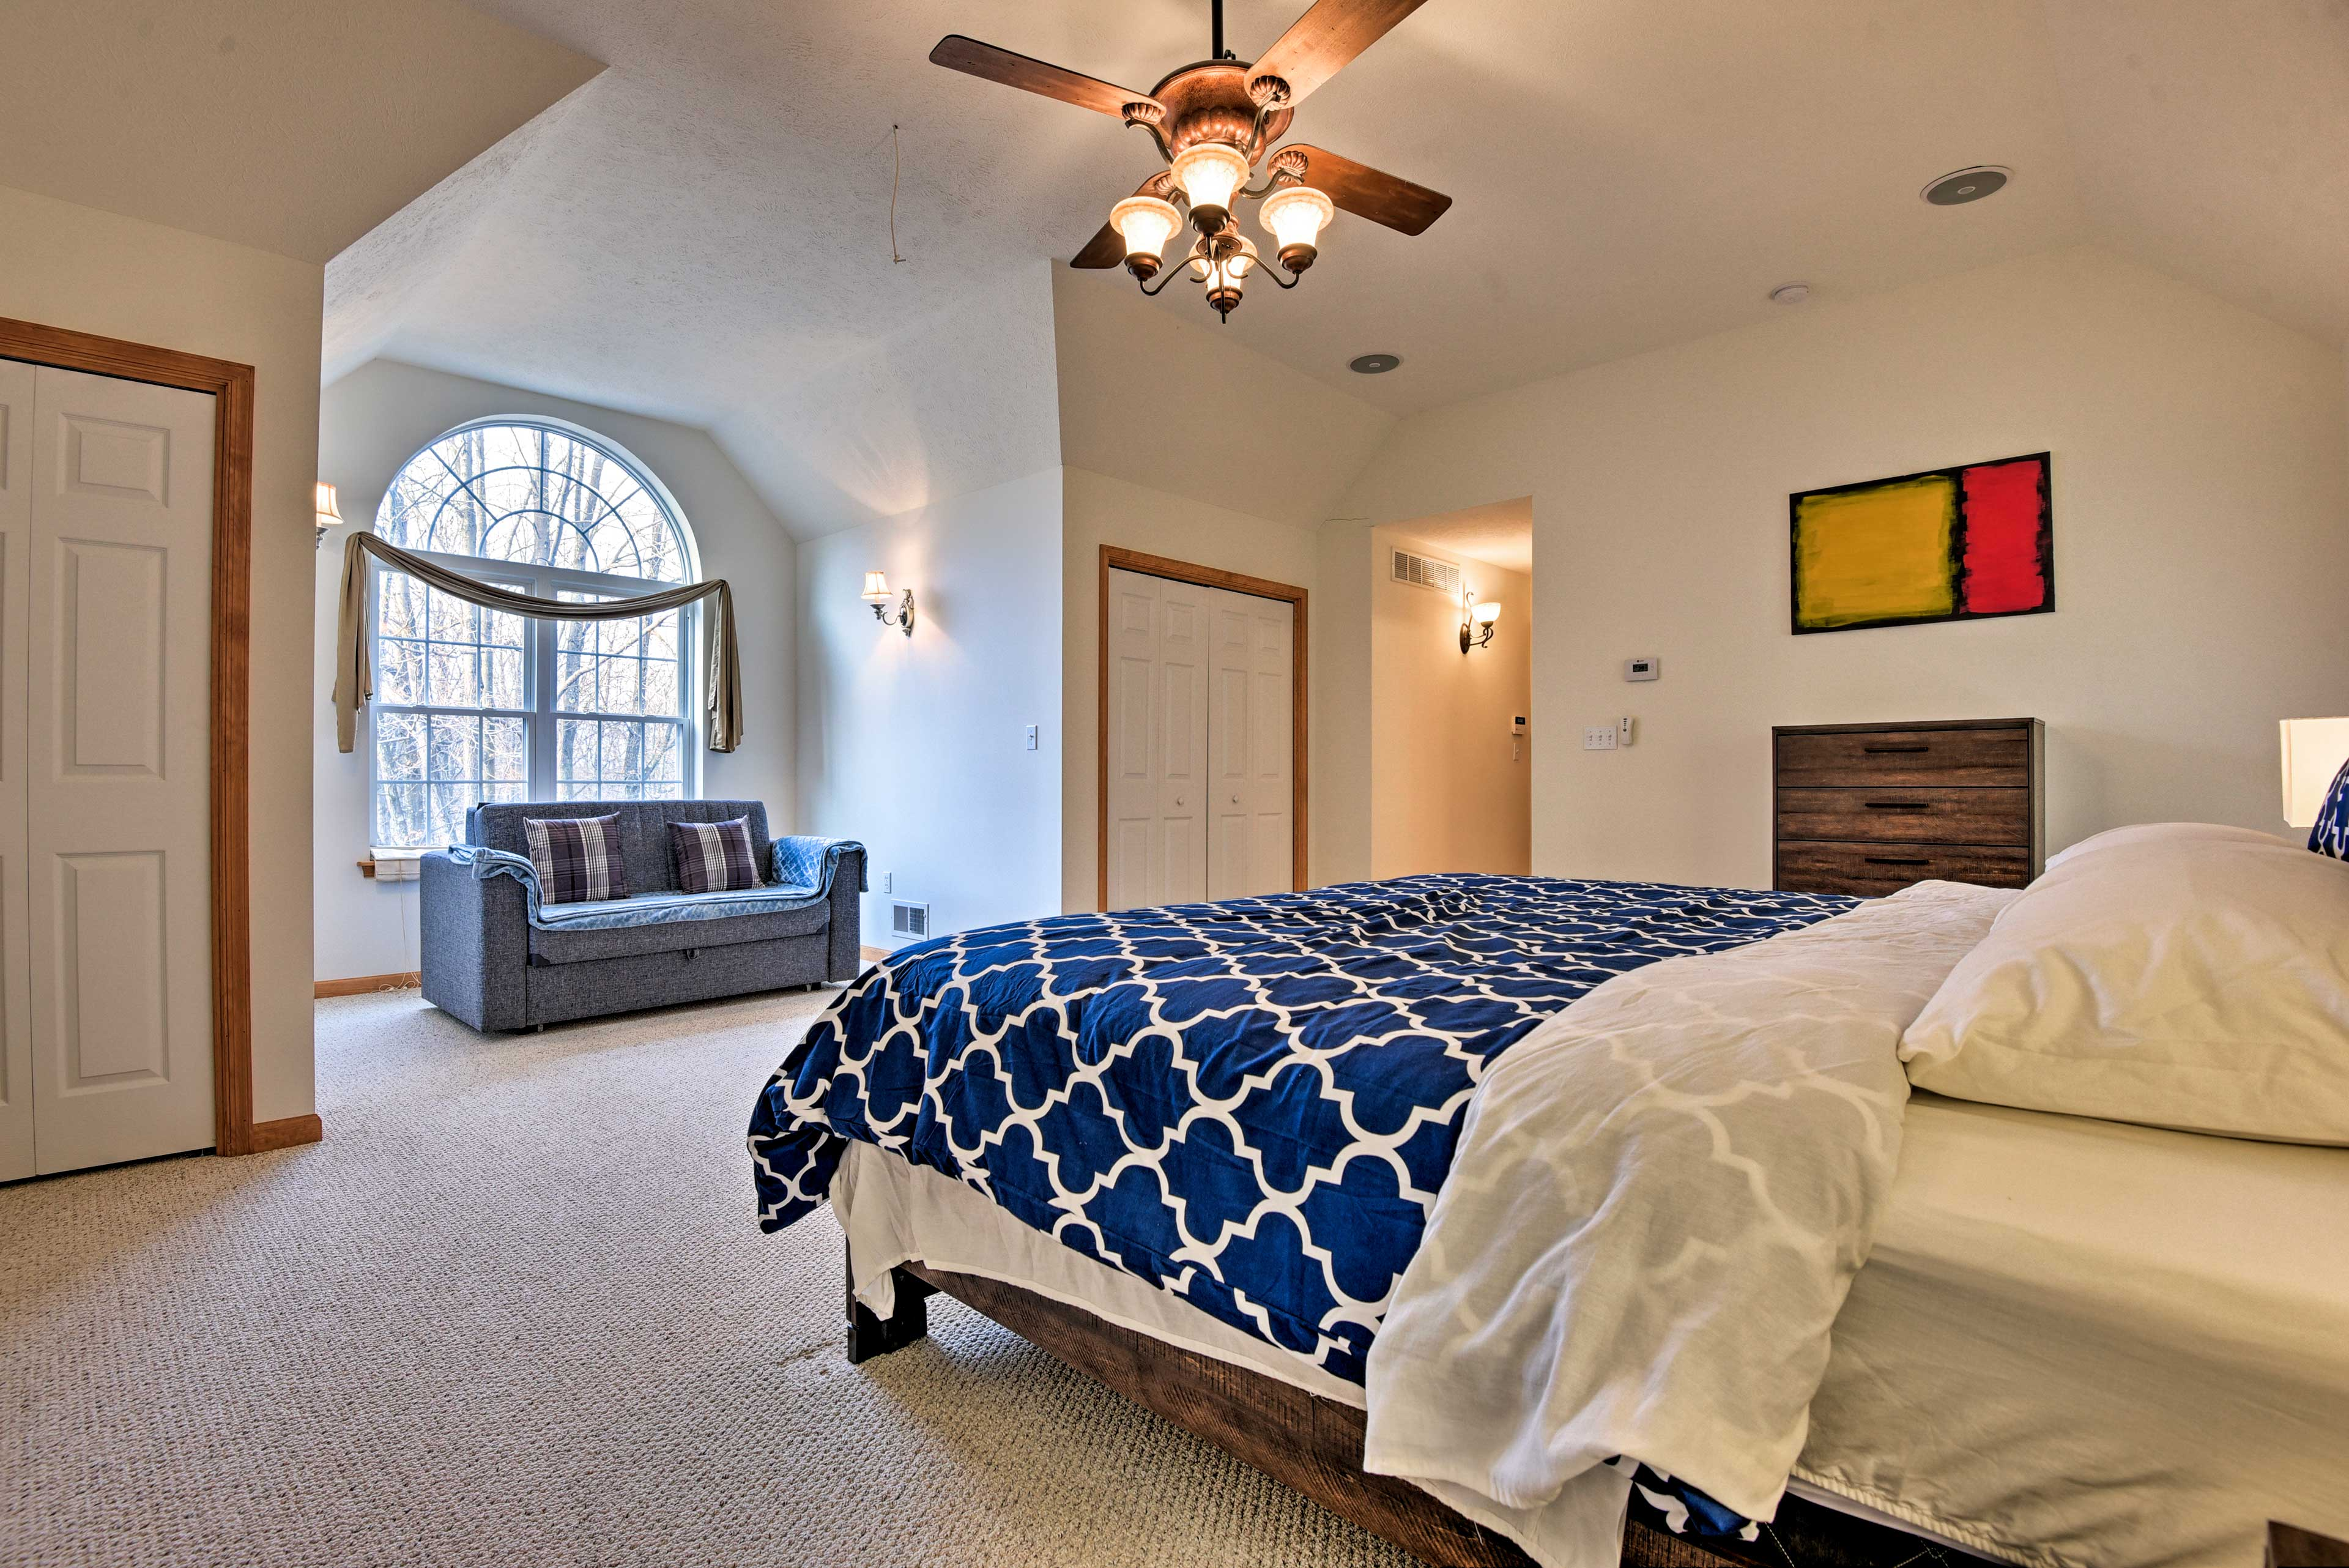 Sleep soundly in this spacious bedroom.